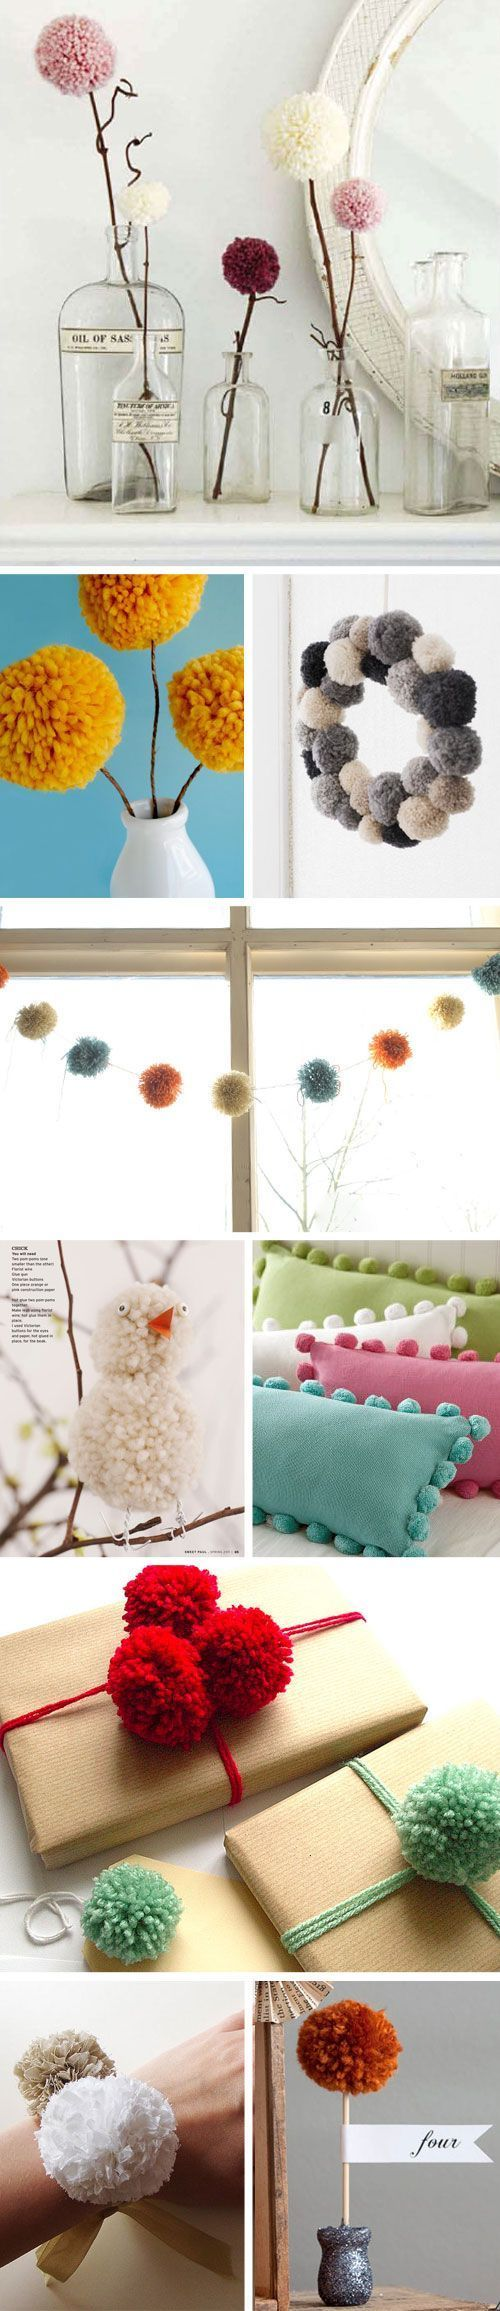 Pom Pom Pandemic | Homemade, Decoration and Weddings